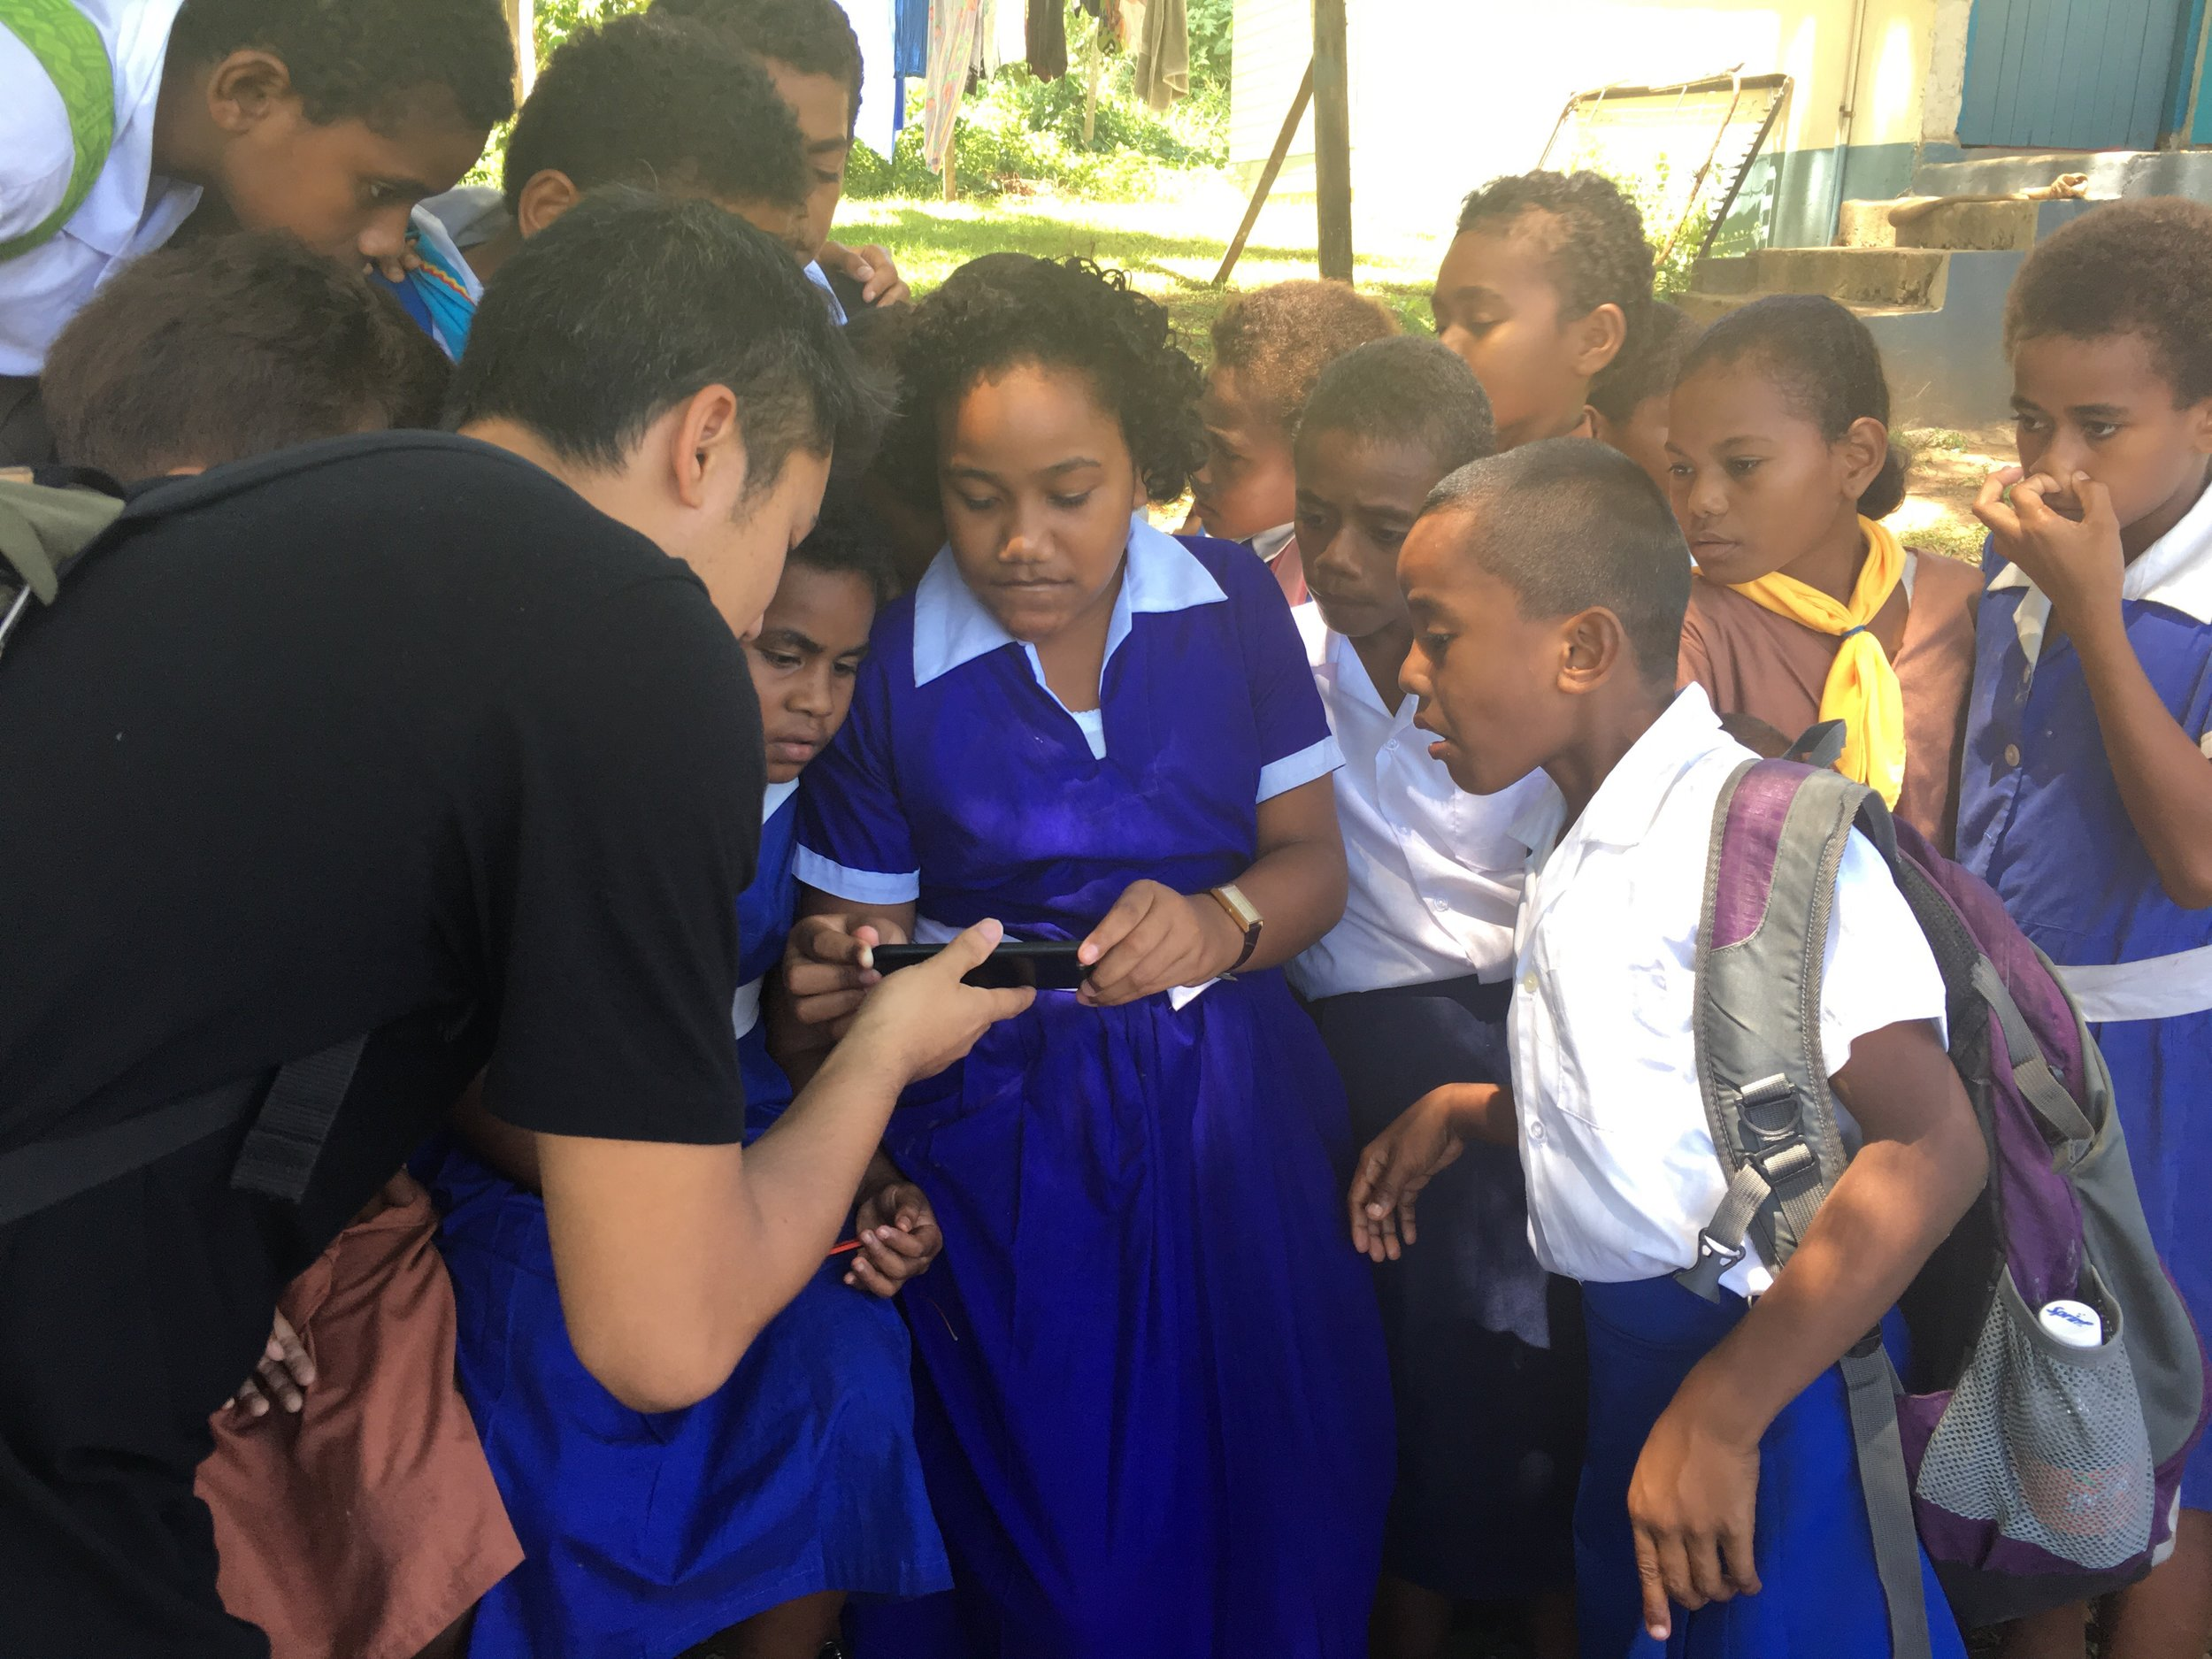 Producer Tash Tan of S1T2 sharing an AR demo to school students on a LAUNCH Legends field reporting trip to Fiji photo by Rob Oliver